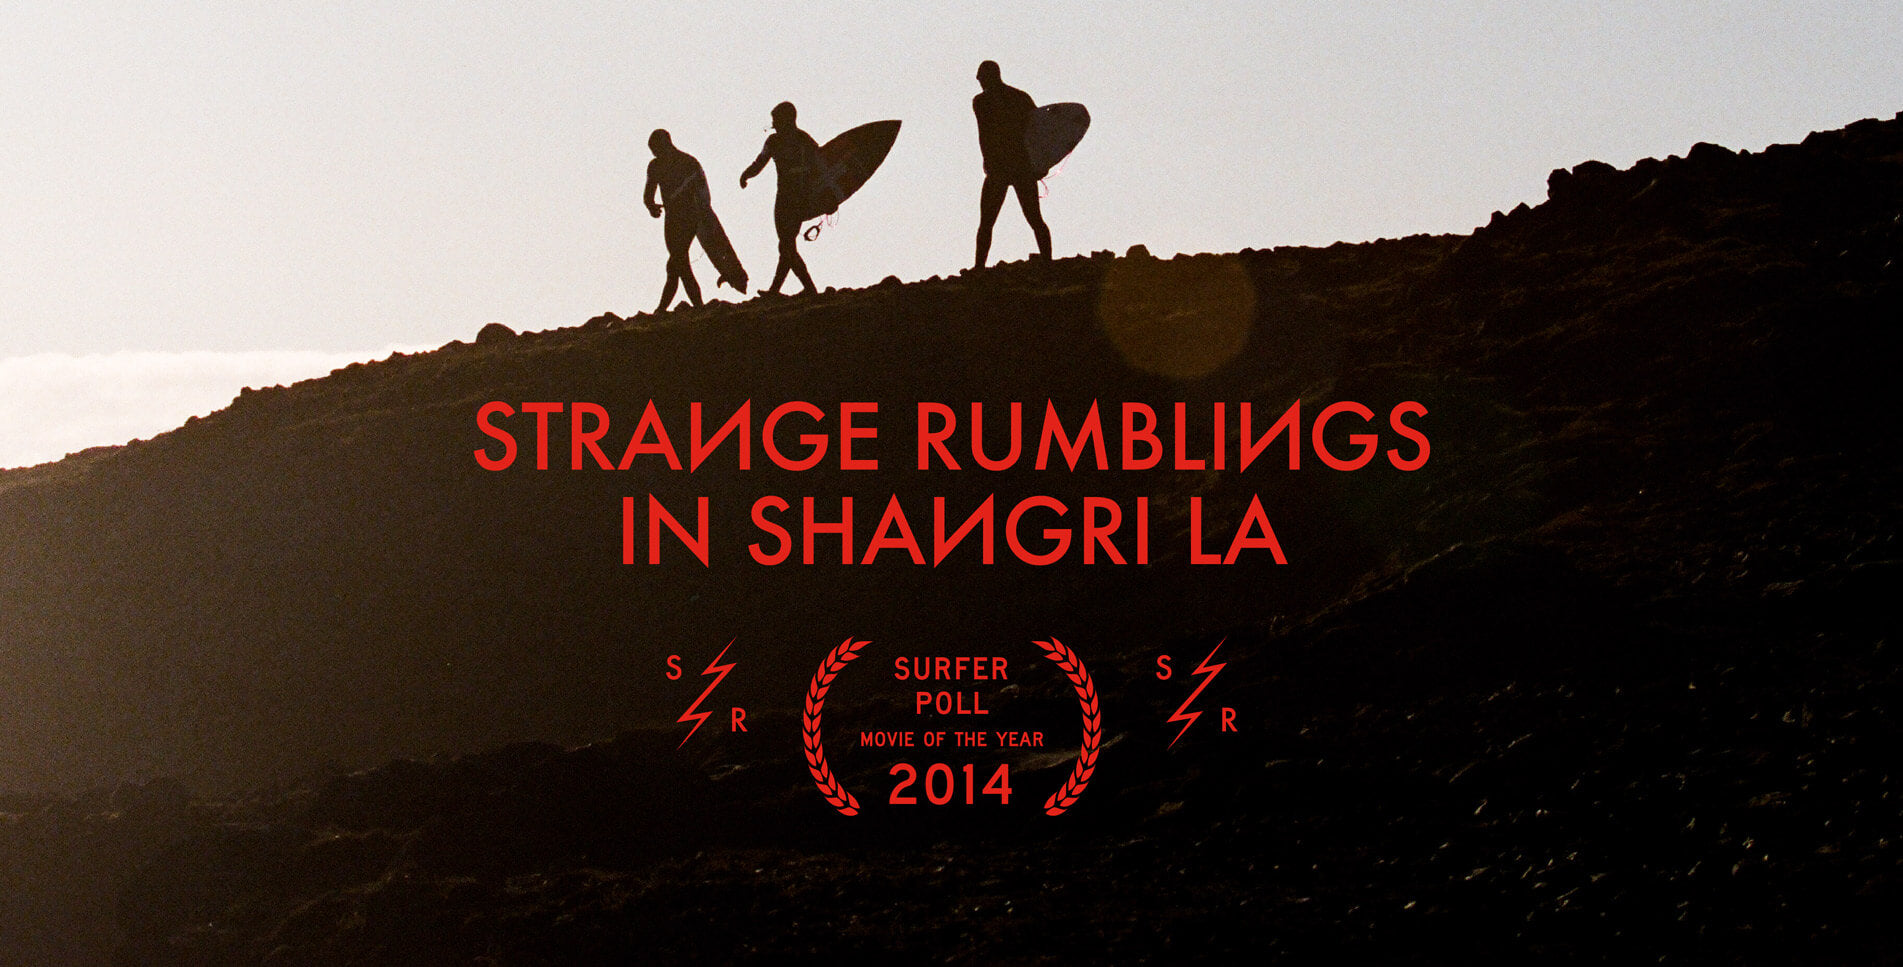 Globe Brand Strange Rumblings in Shangri La